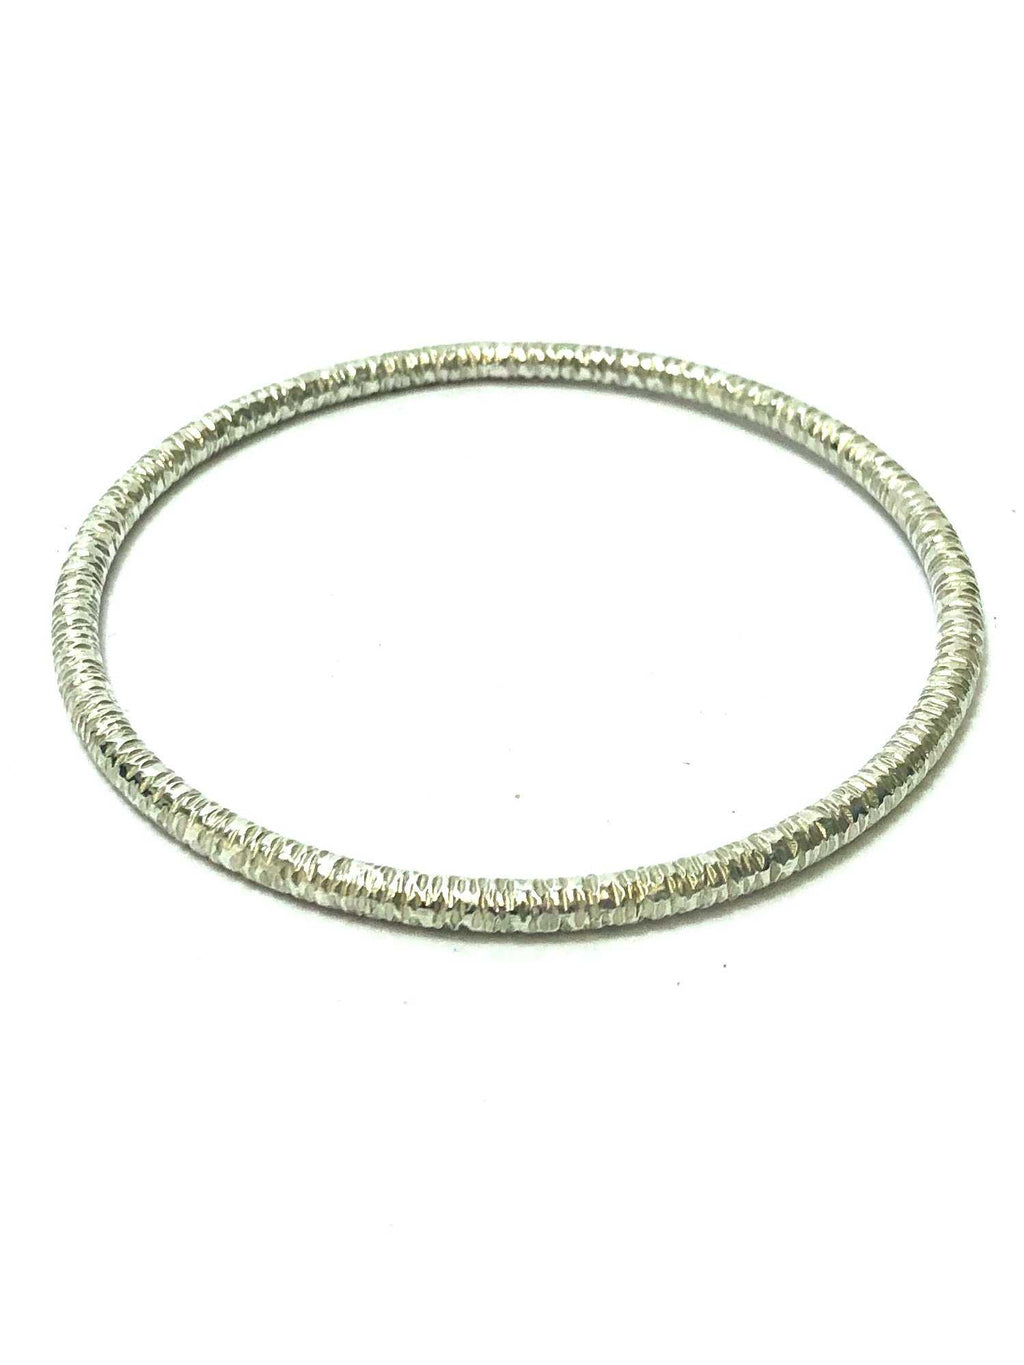 Mackay and Pearson Hammered Bangle - SHAKSPEARE GLASS